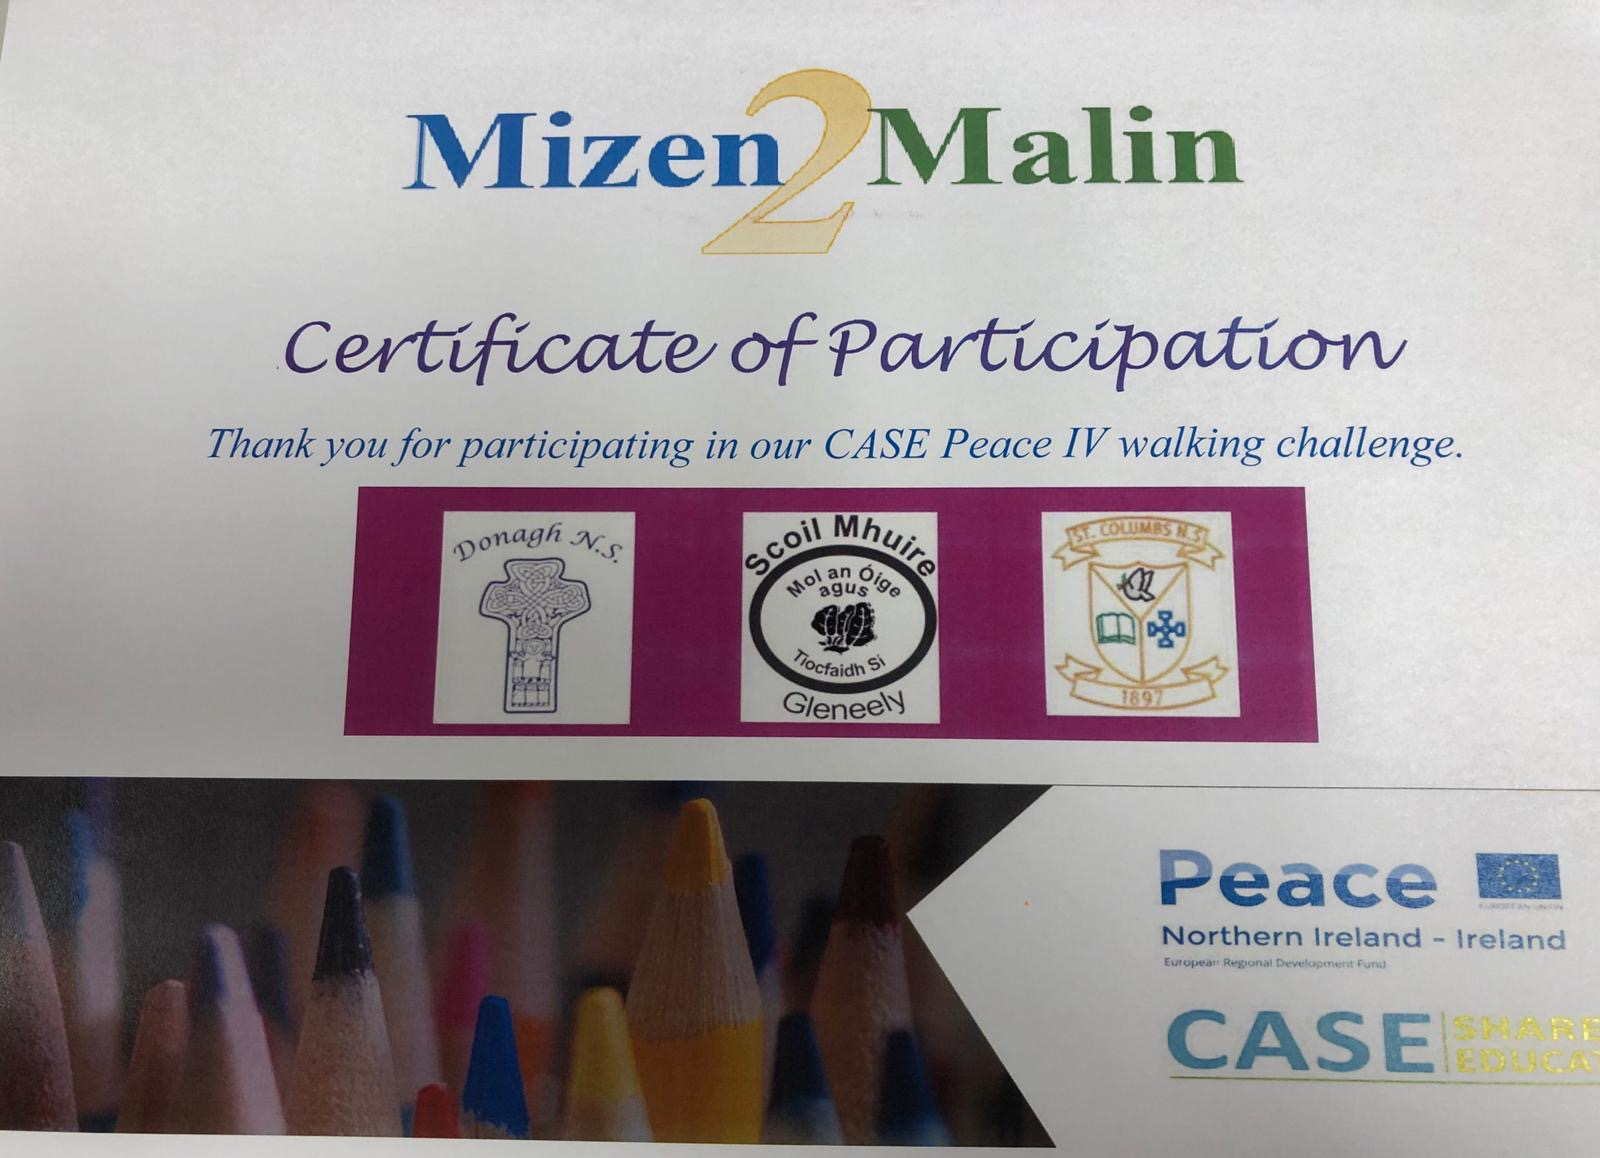 Certificate of Participation in walking challenge